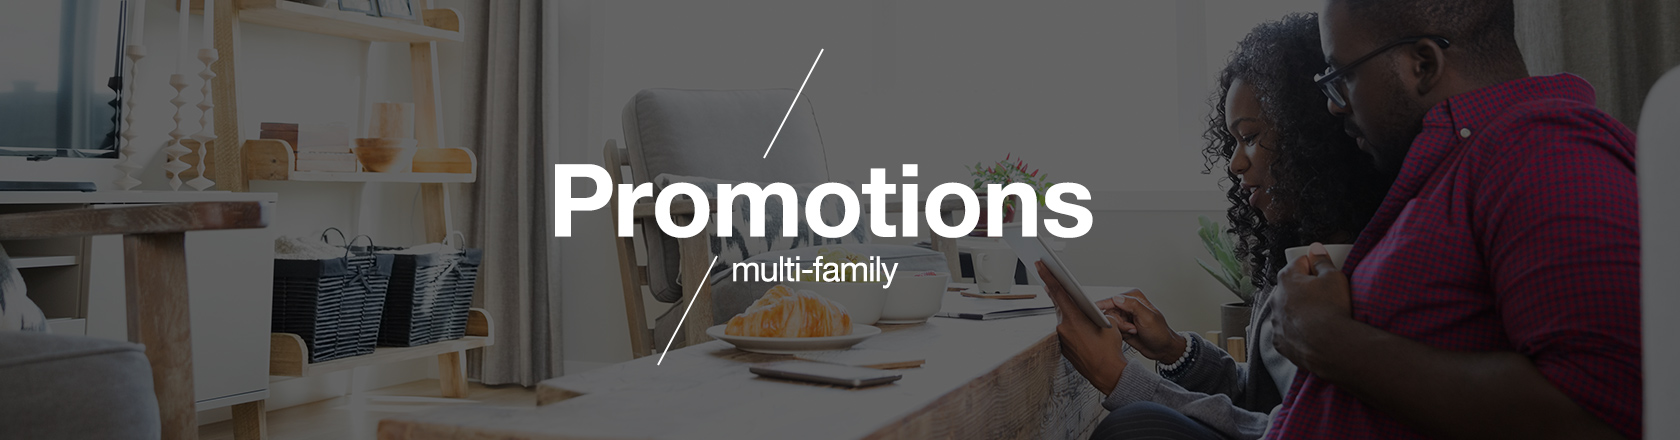 Multi-Family Promotions banner